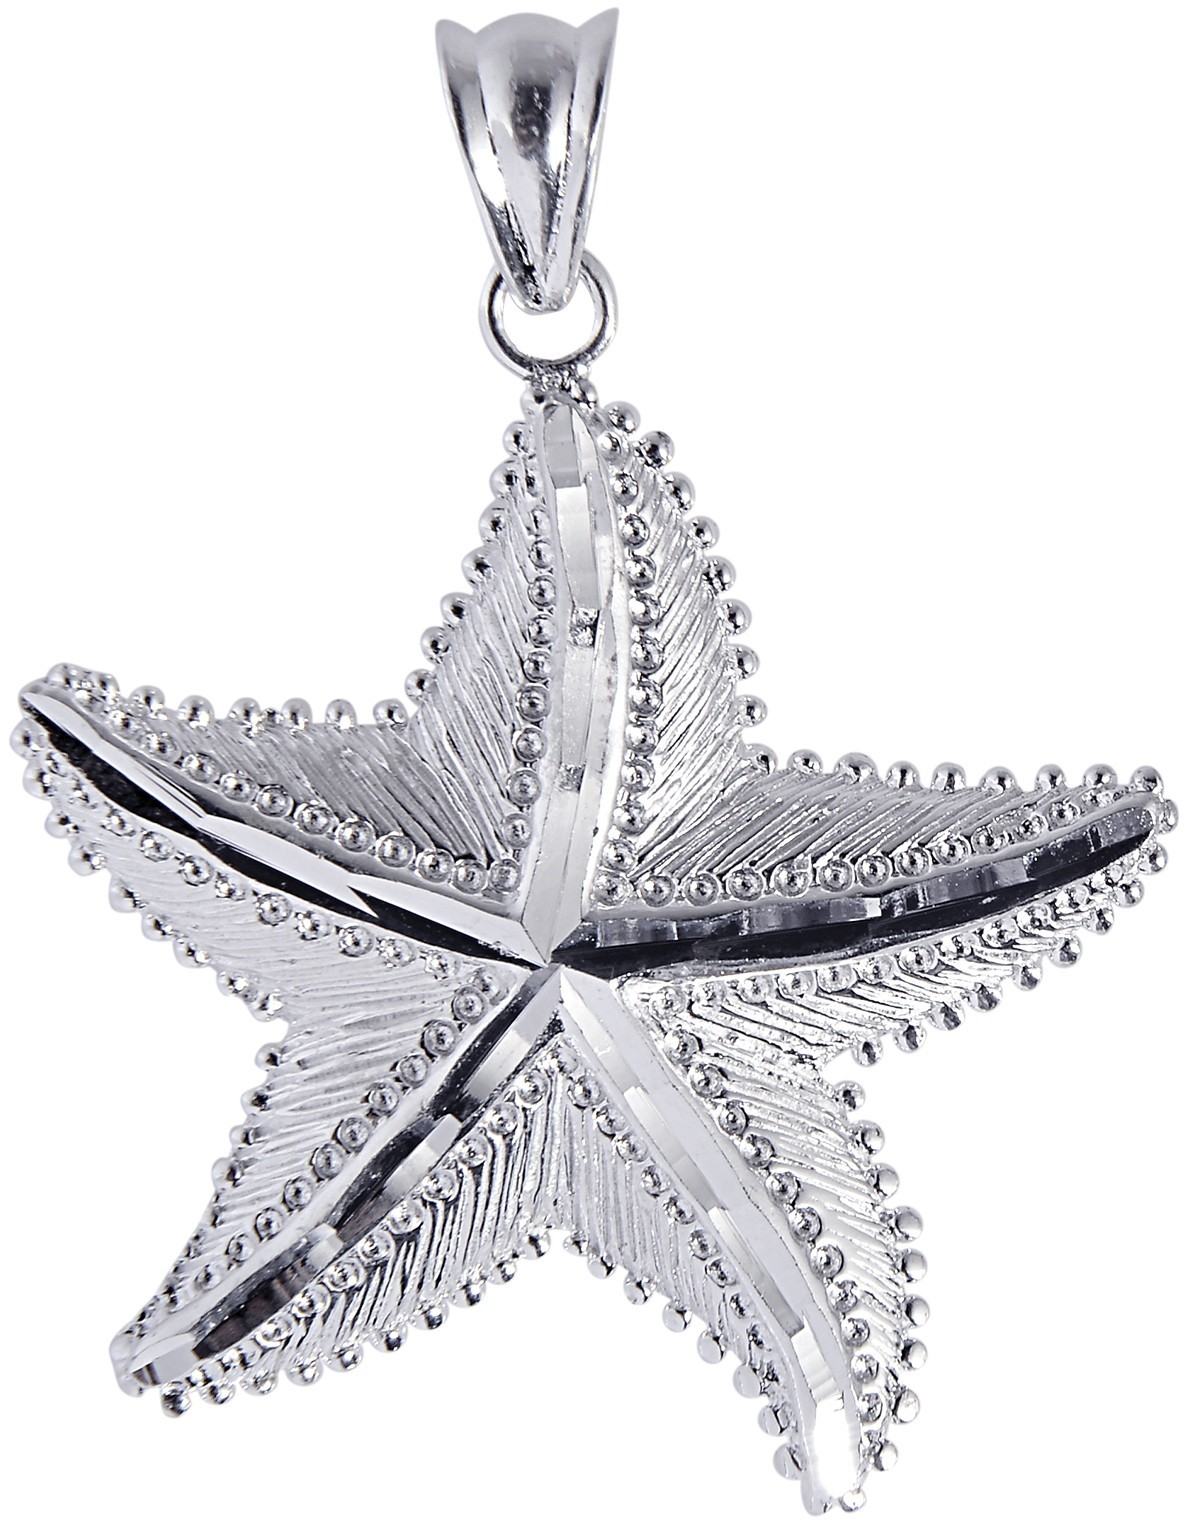 Silver Rhodium Plated Shiny Textured Starfish Sea Life Pendant (BTAGCH123)